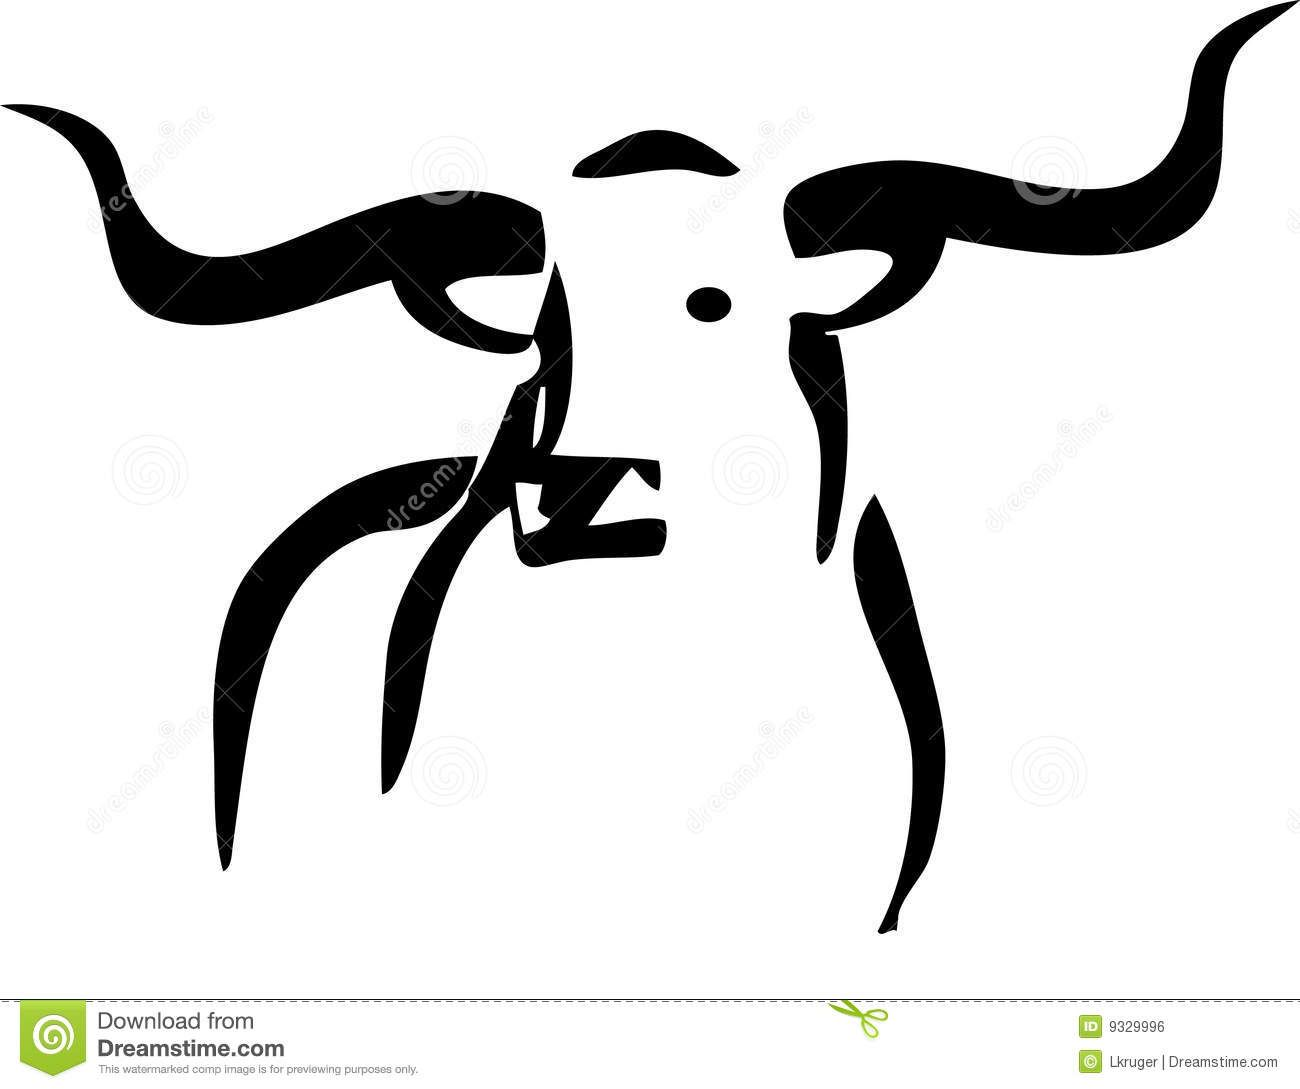 Long horn clipart clip art free download Longhorn Skull Clipart Longhorn Standing In Grass | Cow and ... clip art free download